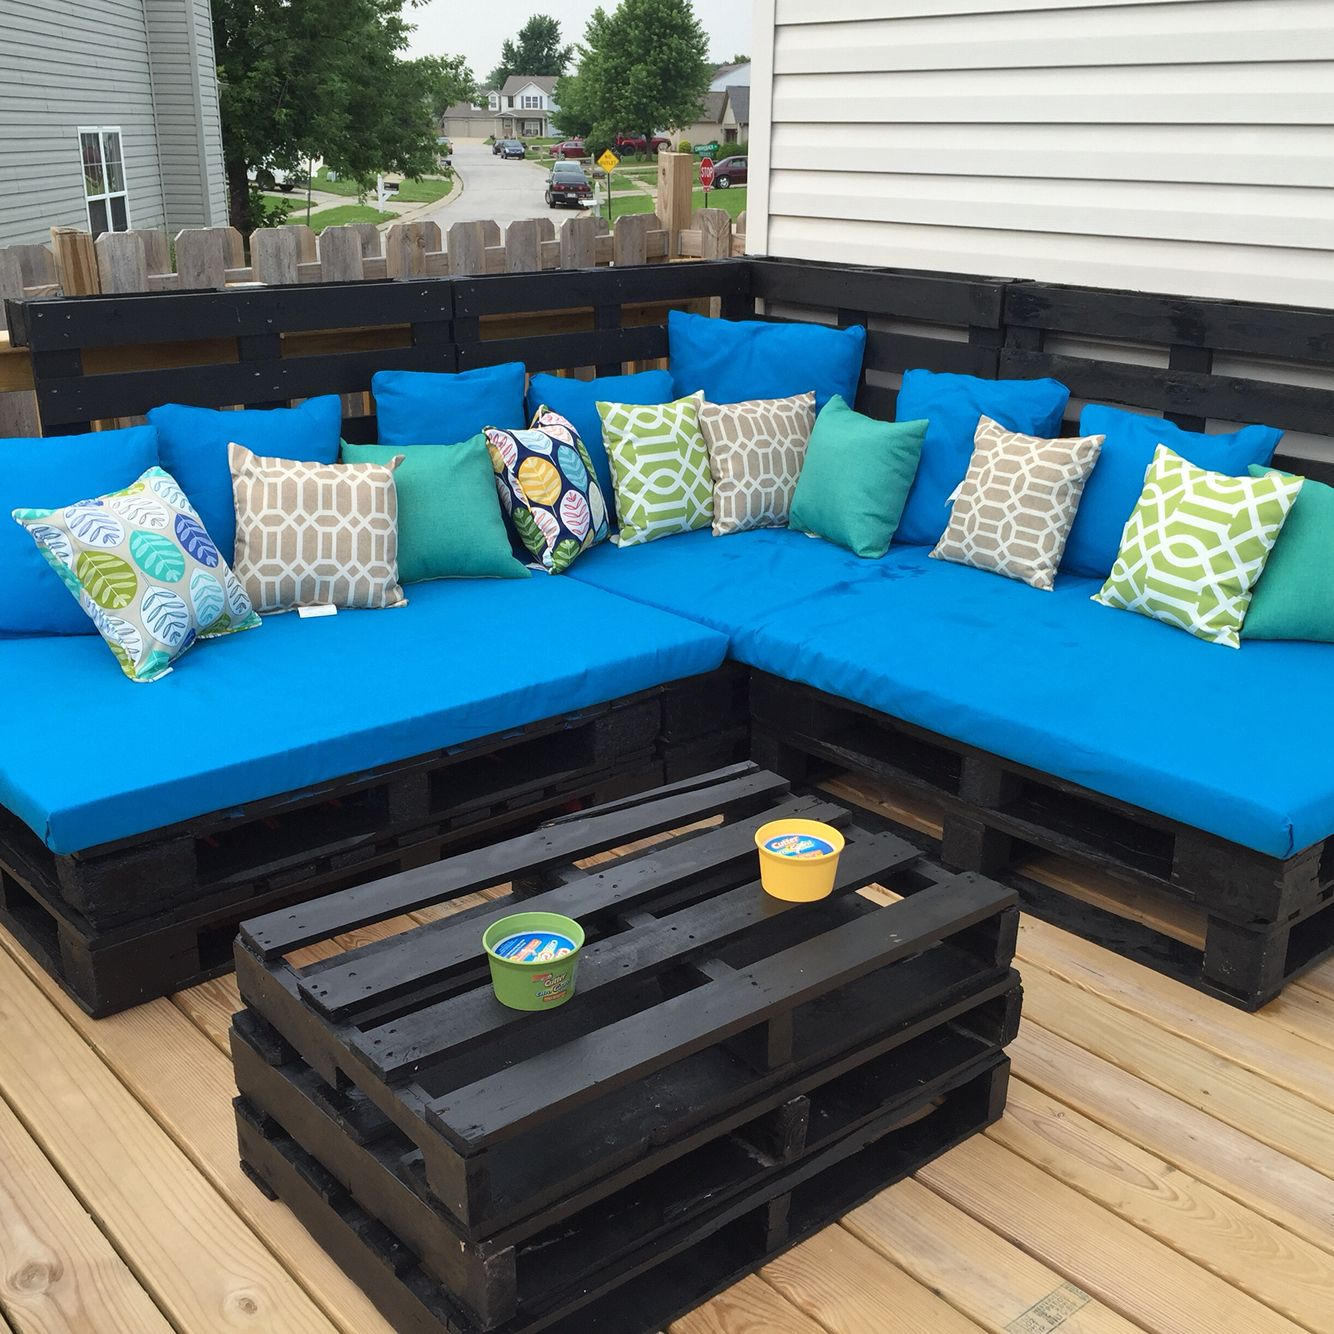 project pallet couch complete so comfy and perfect for a night on the deck gartenm bel. Black Bedroom Furniture Sets. Home Design Ideas